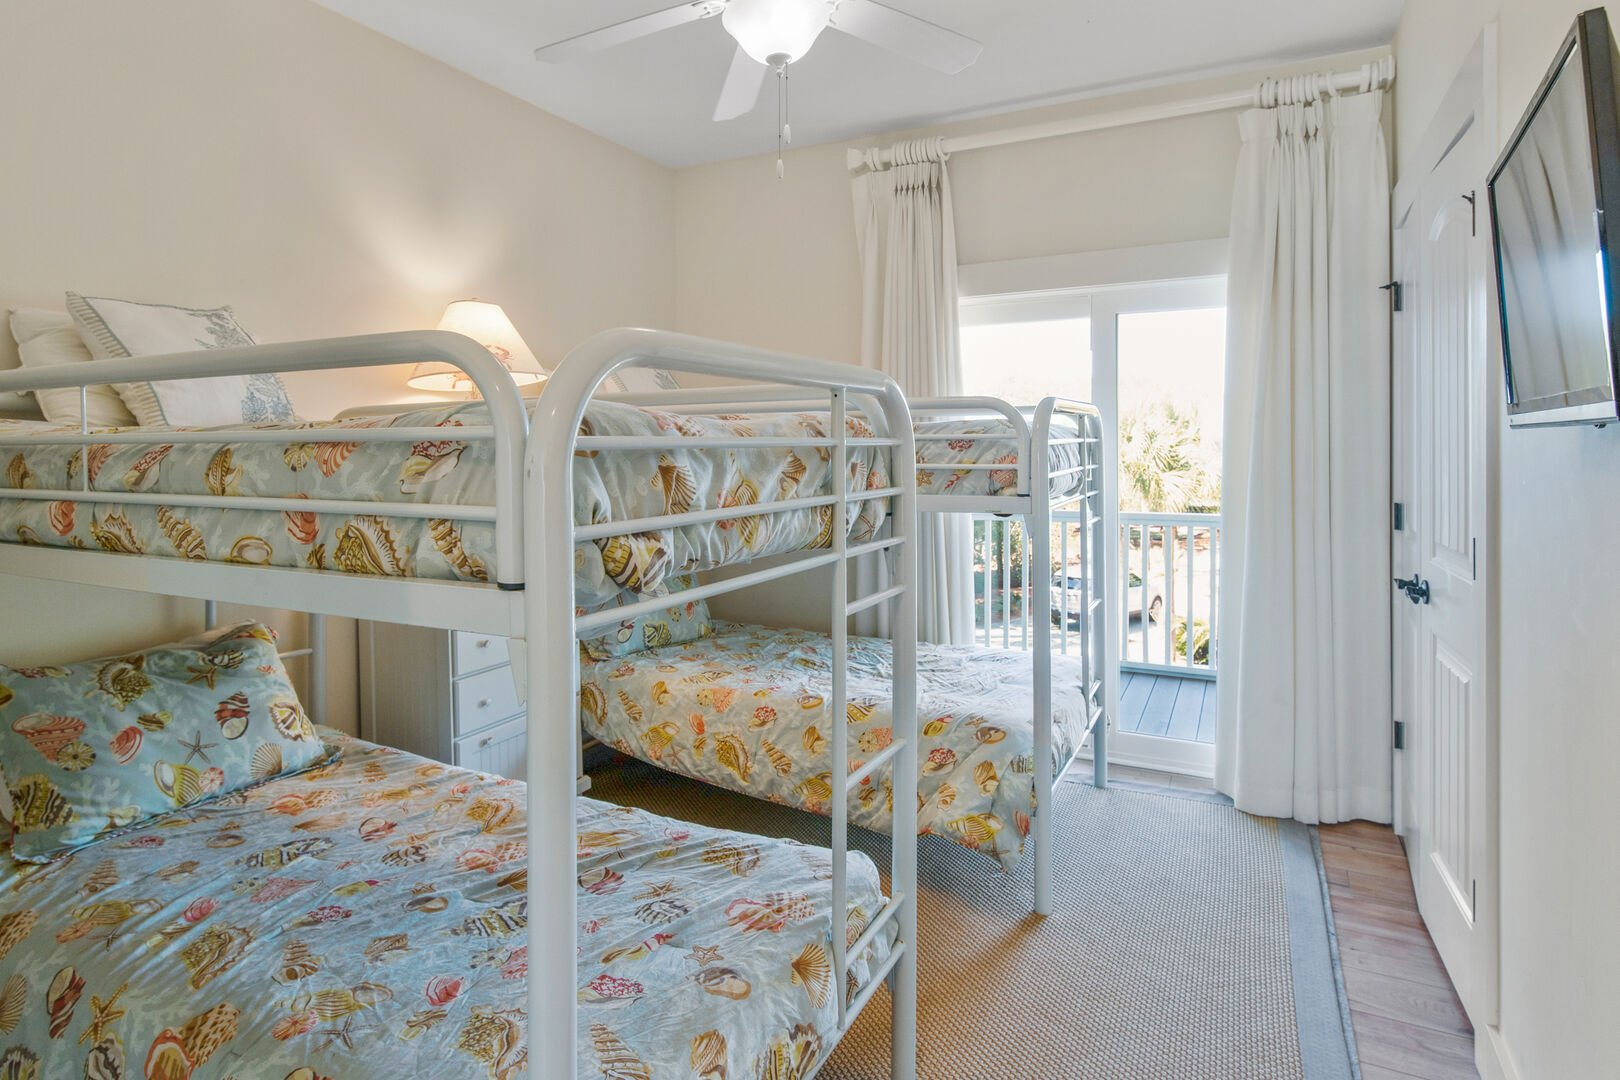 2 Sets of Bunk Beds - First Floor